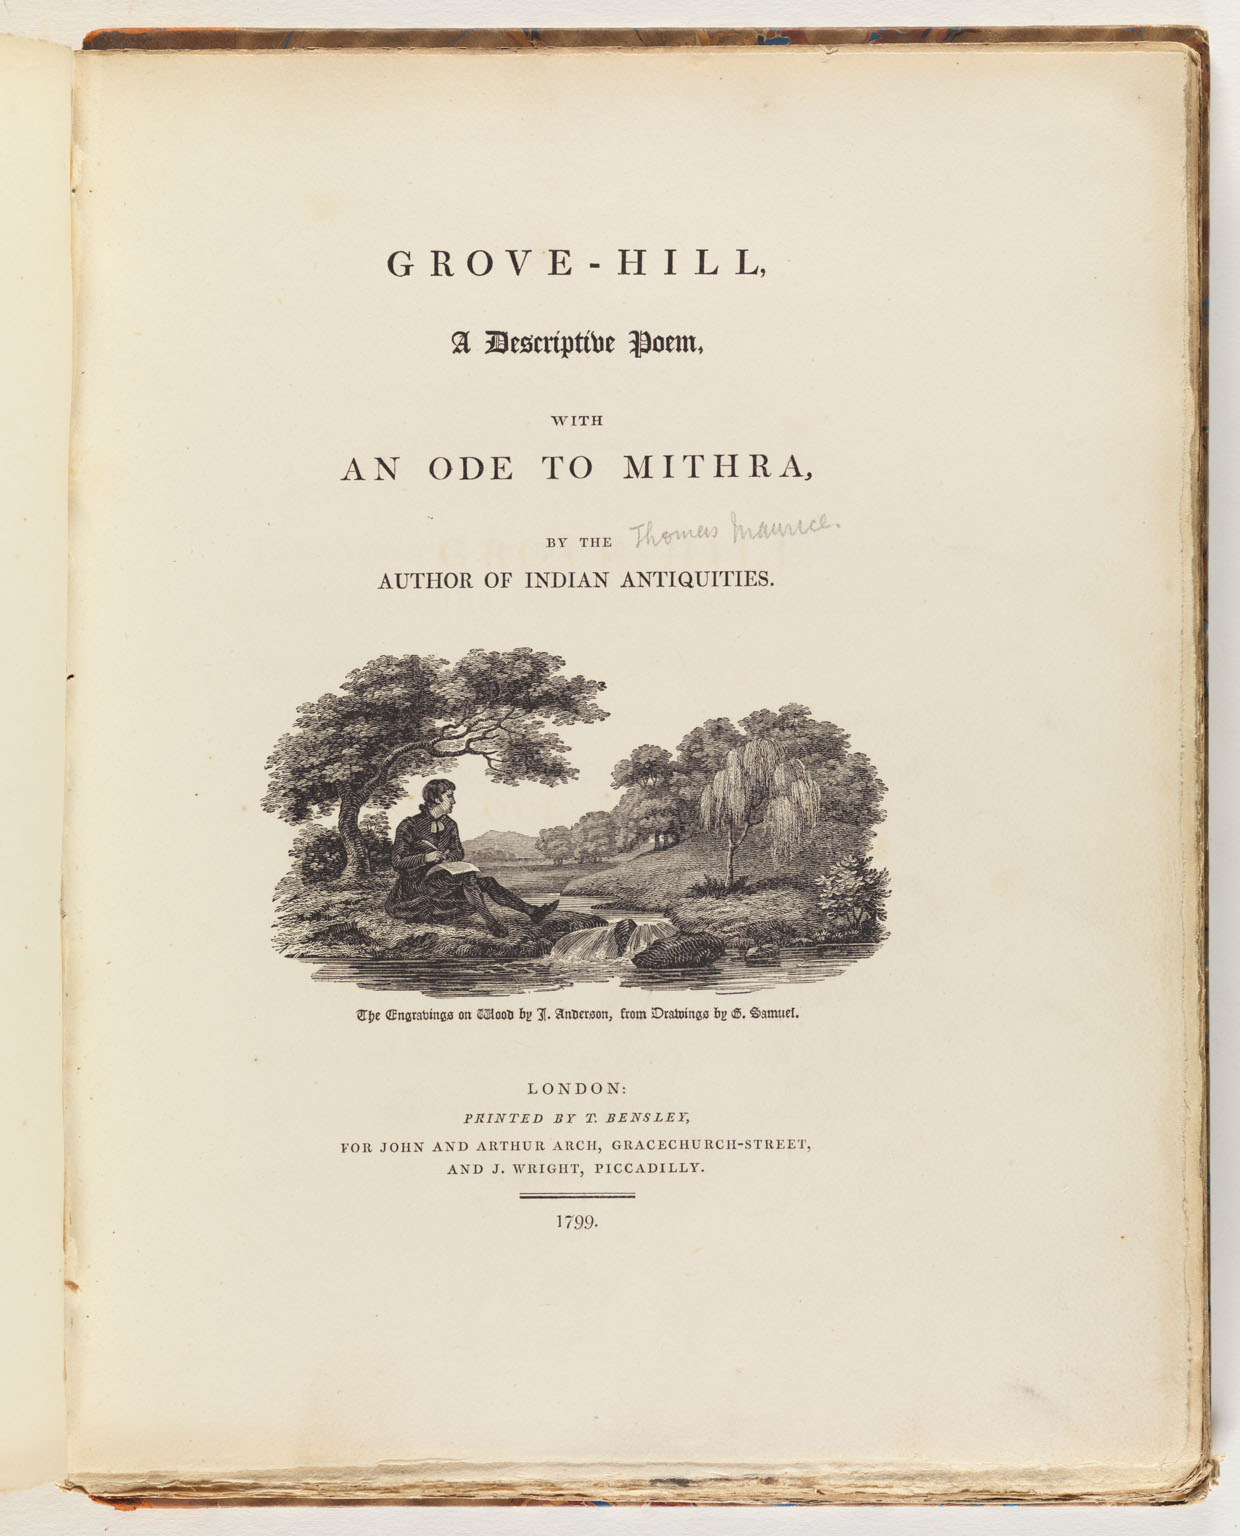 Title Page: Grove-Hill : a descriptive poem, with An ode to Mithra